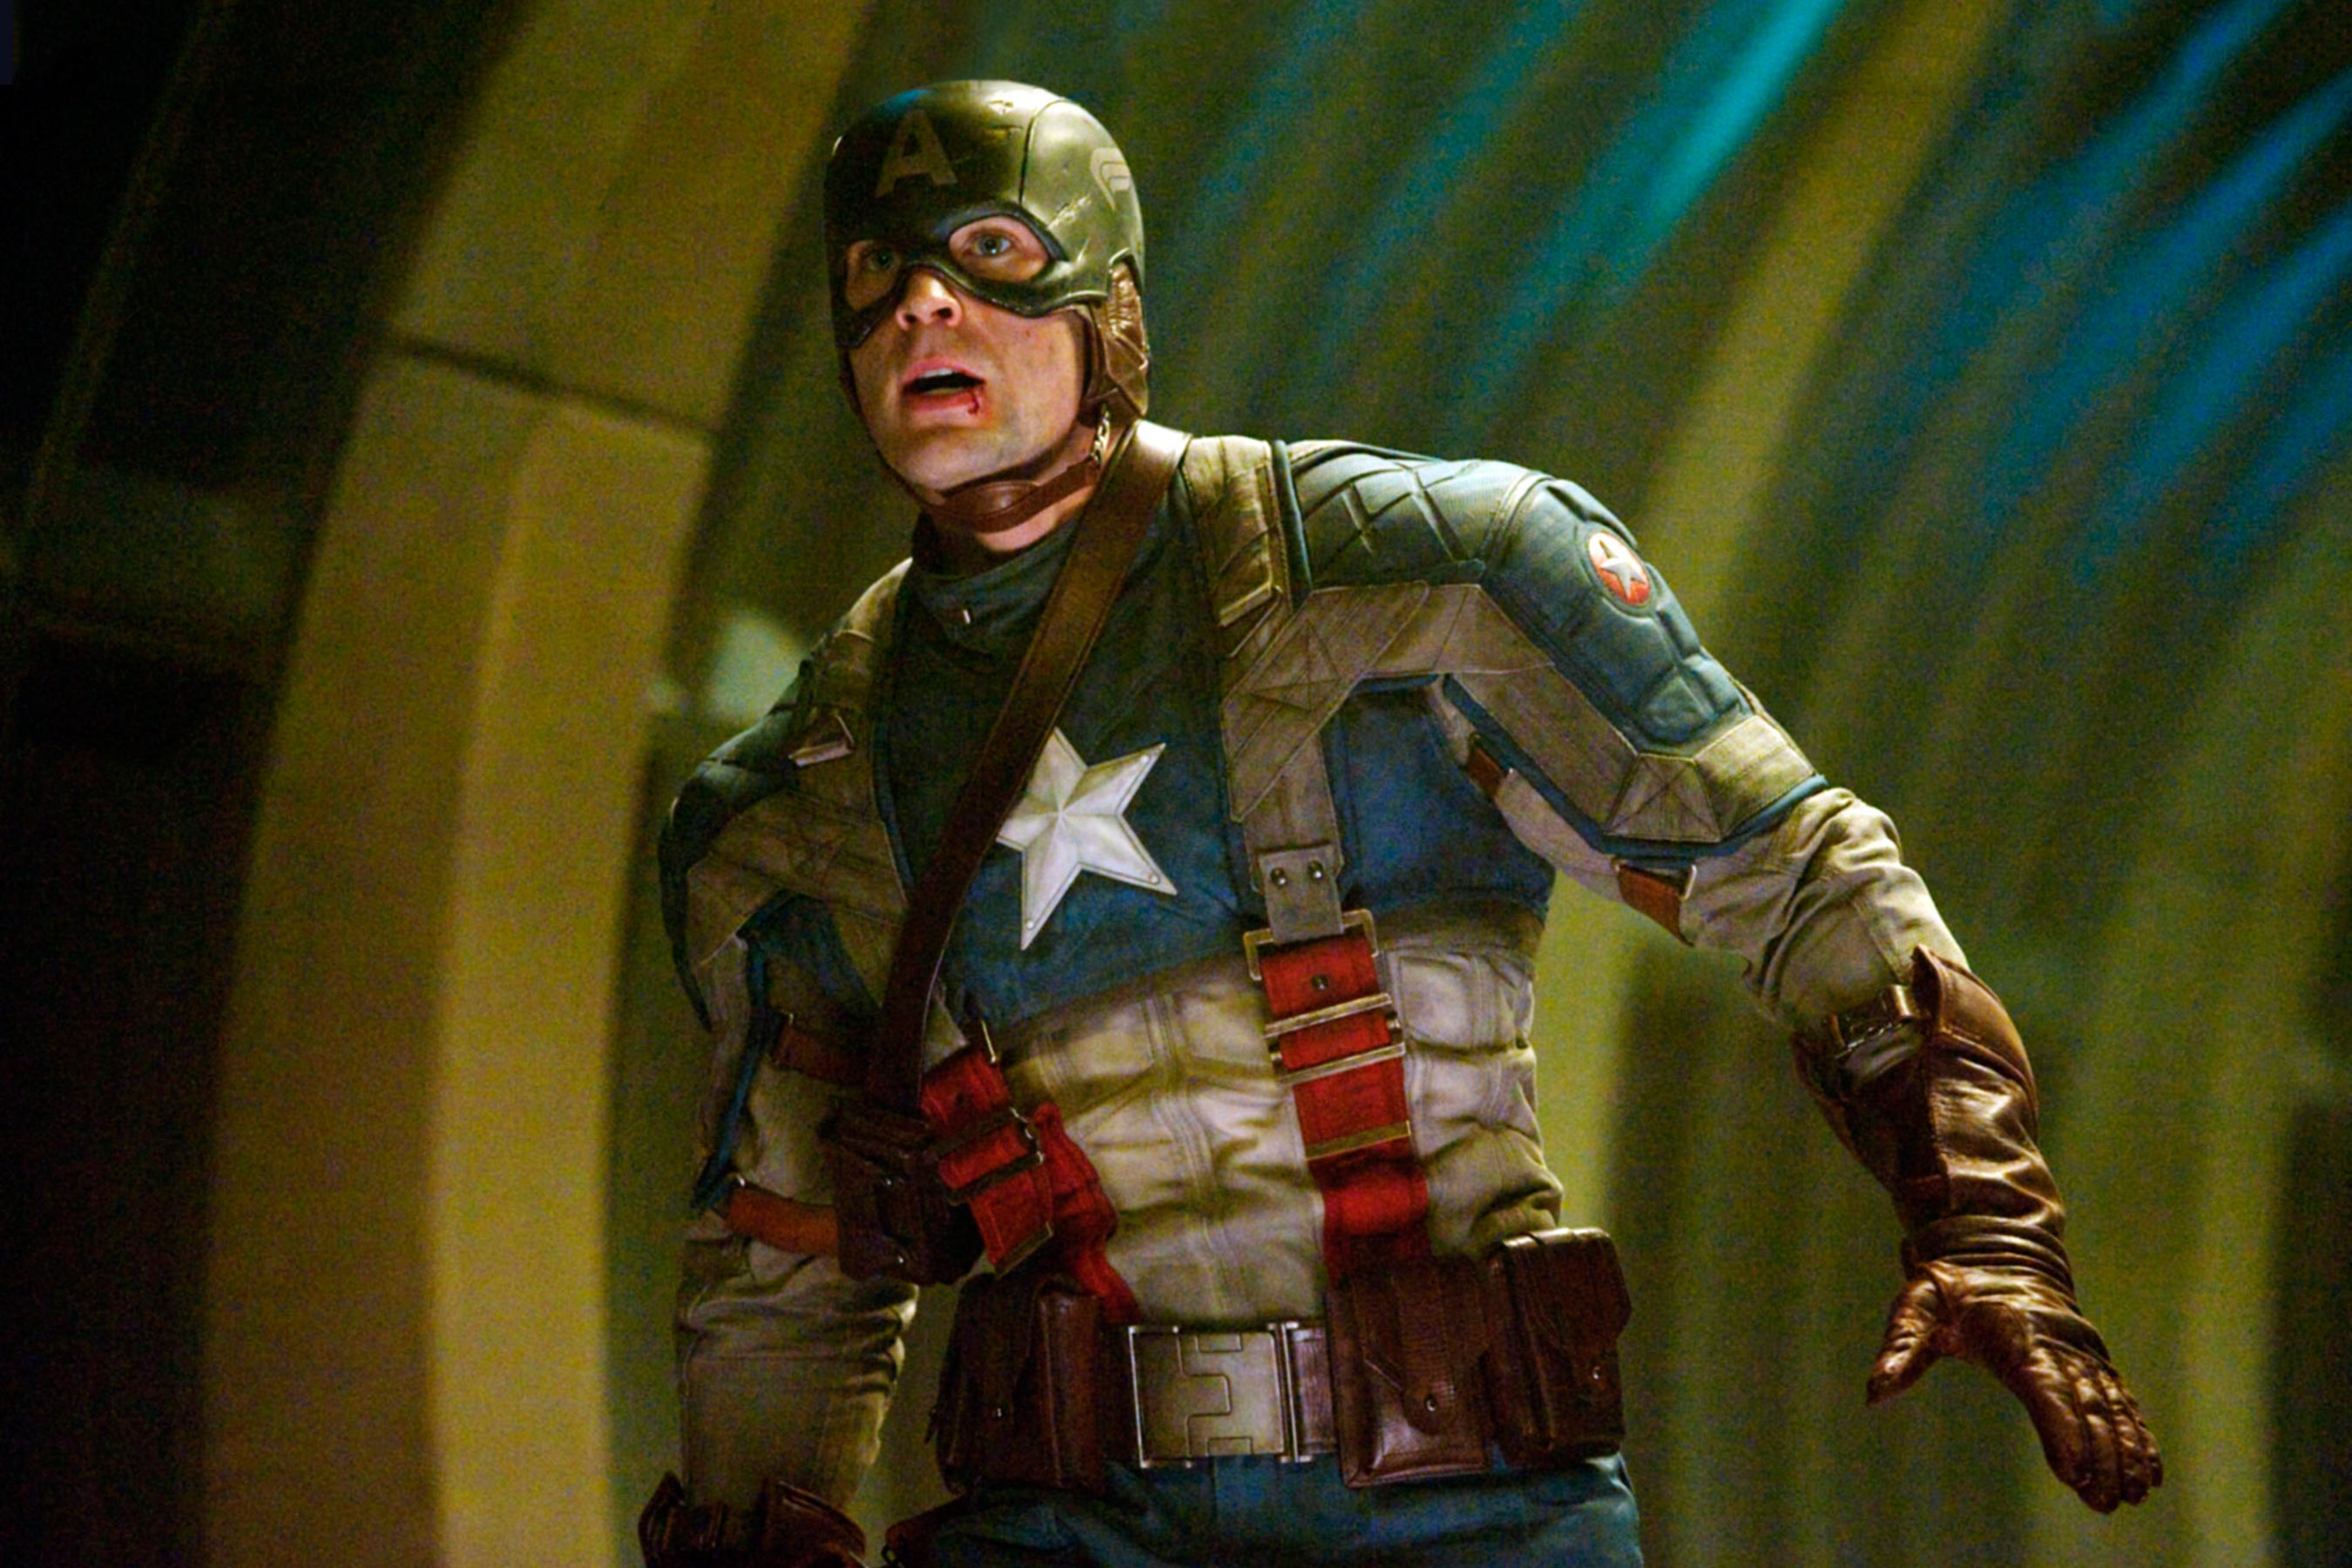 Chris Evans as Captain America: The First Avenger (2011)